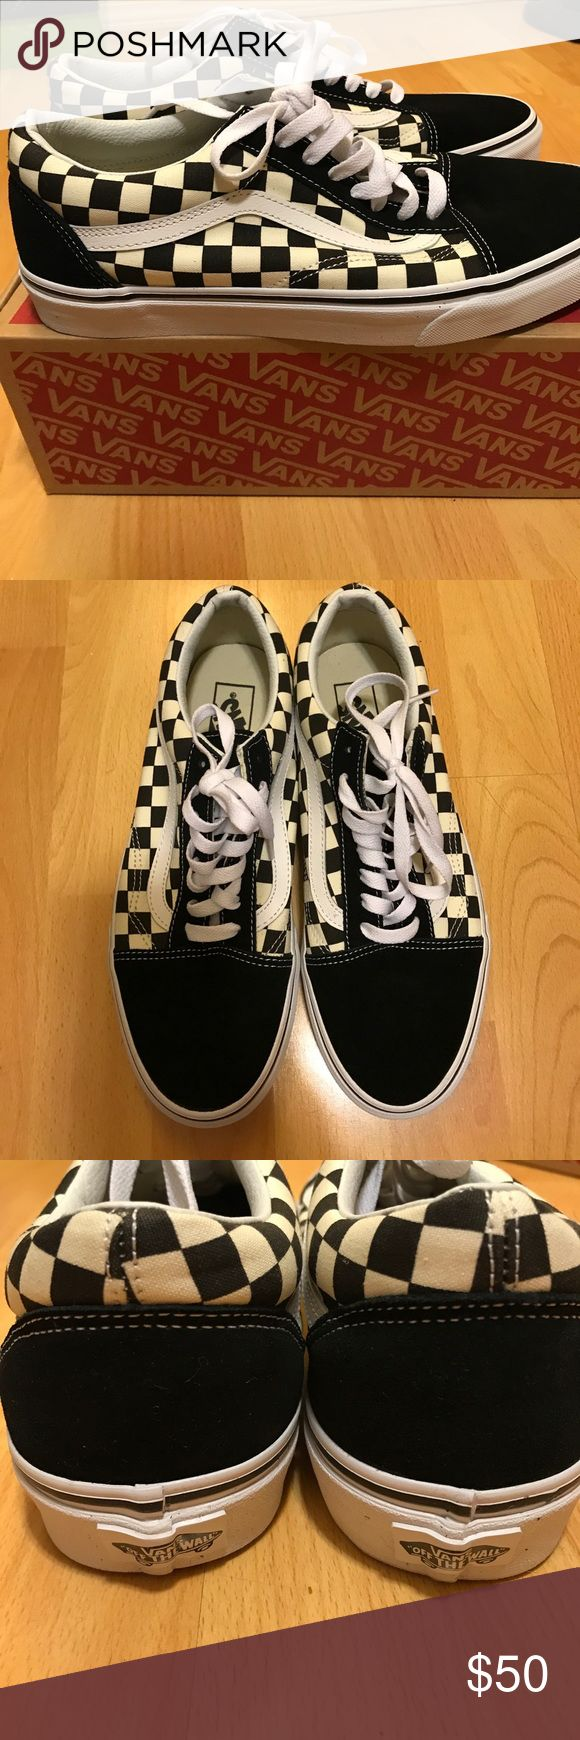 Vans Primary Check Old Skool Shoes Never-been-worn Vans skate shoes in the iconic checkerboard print with original box. No offers/trades, price firm. Vans Shoes Sneakers